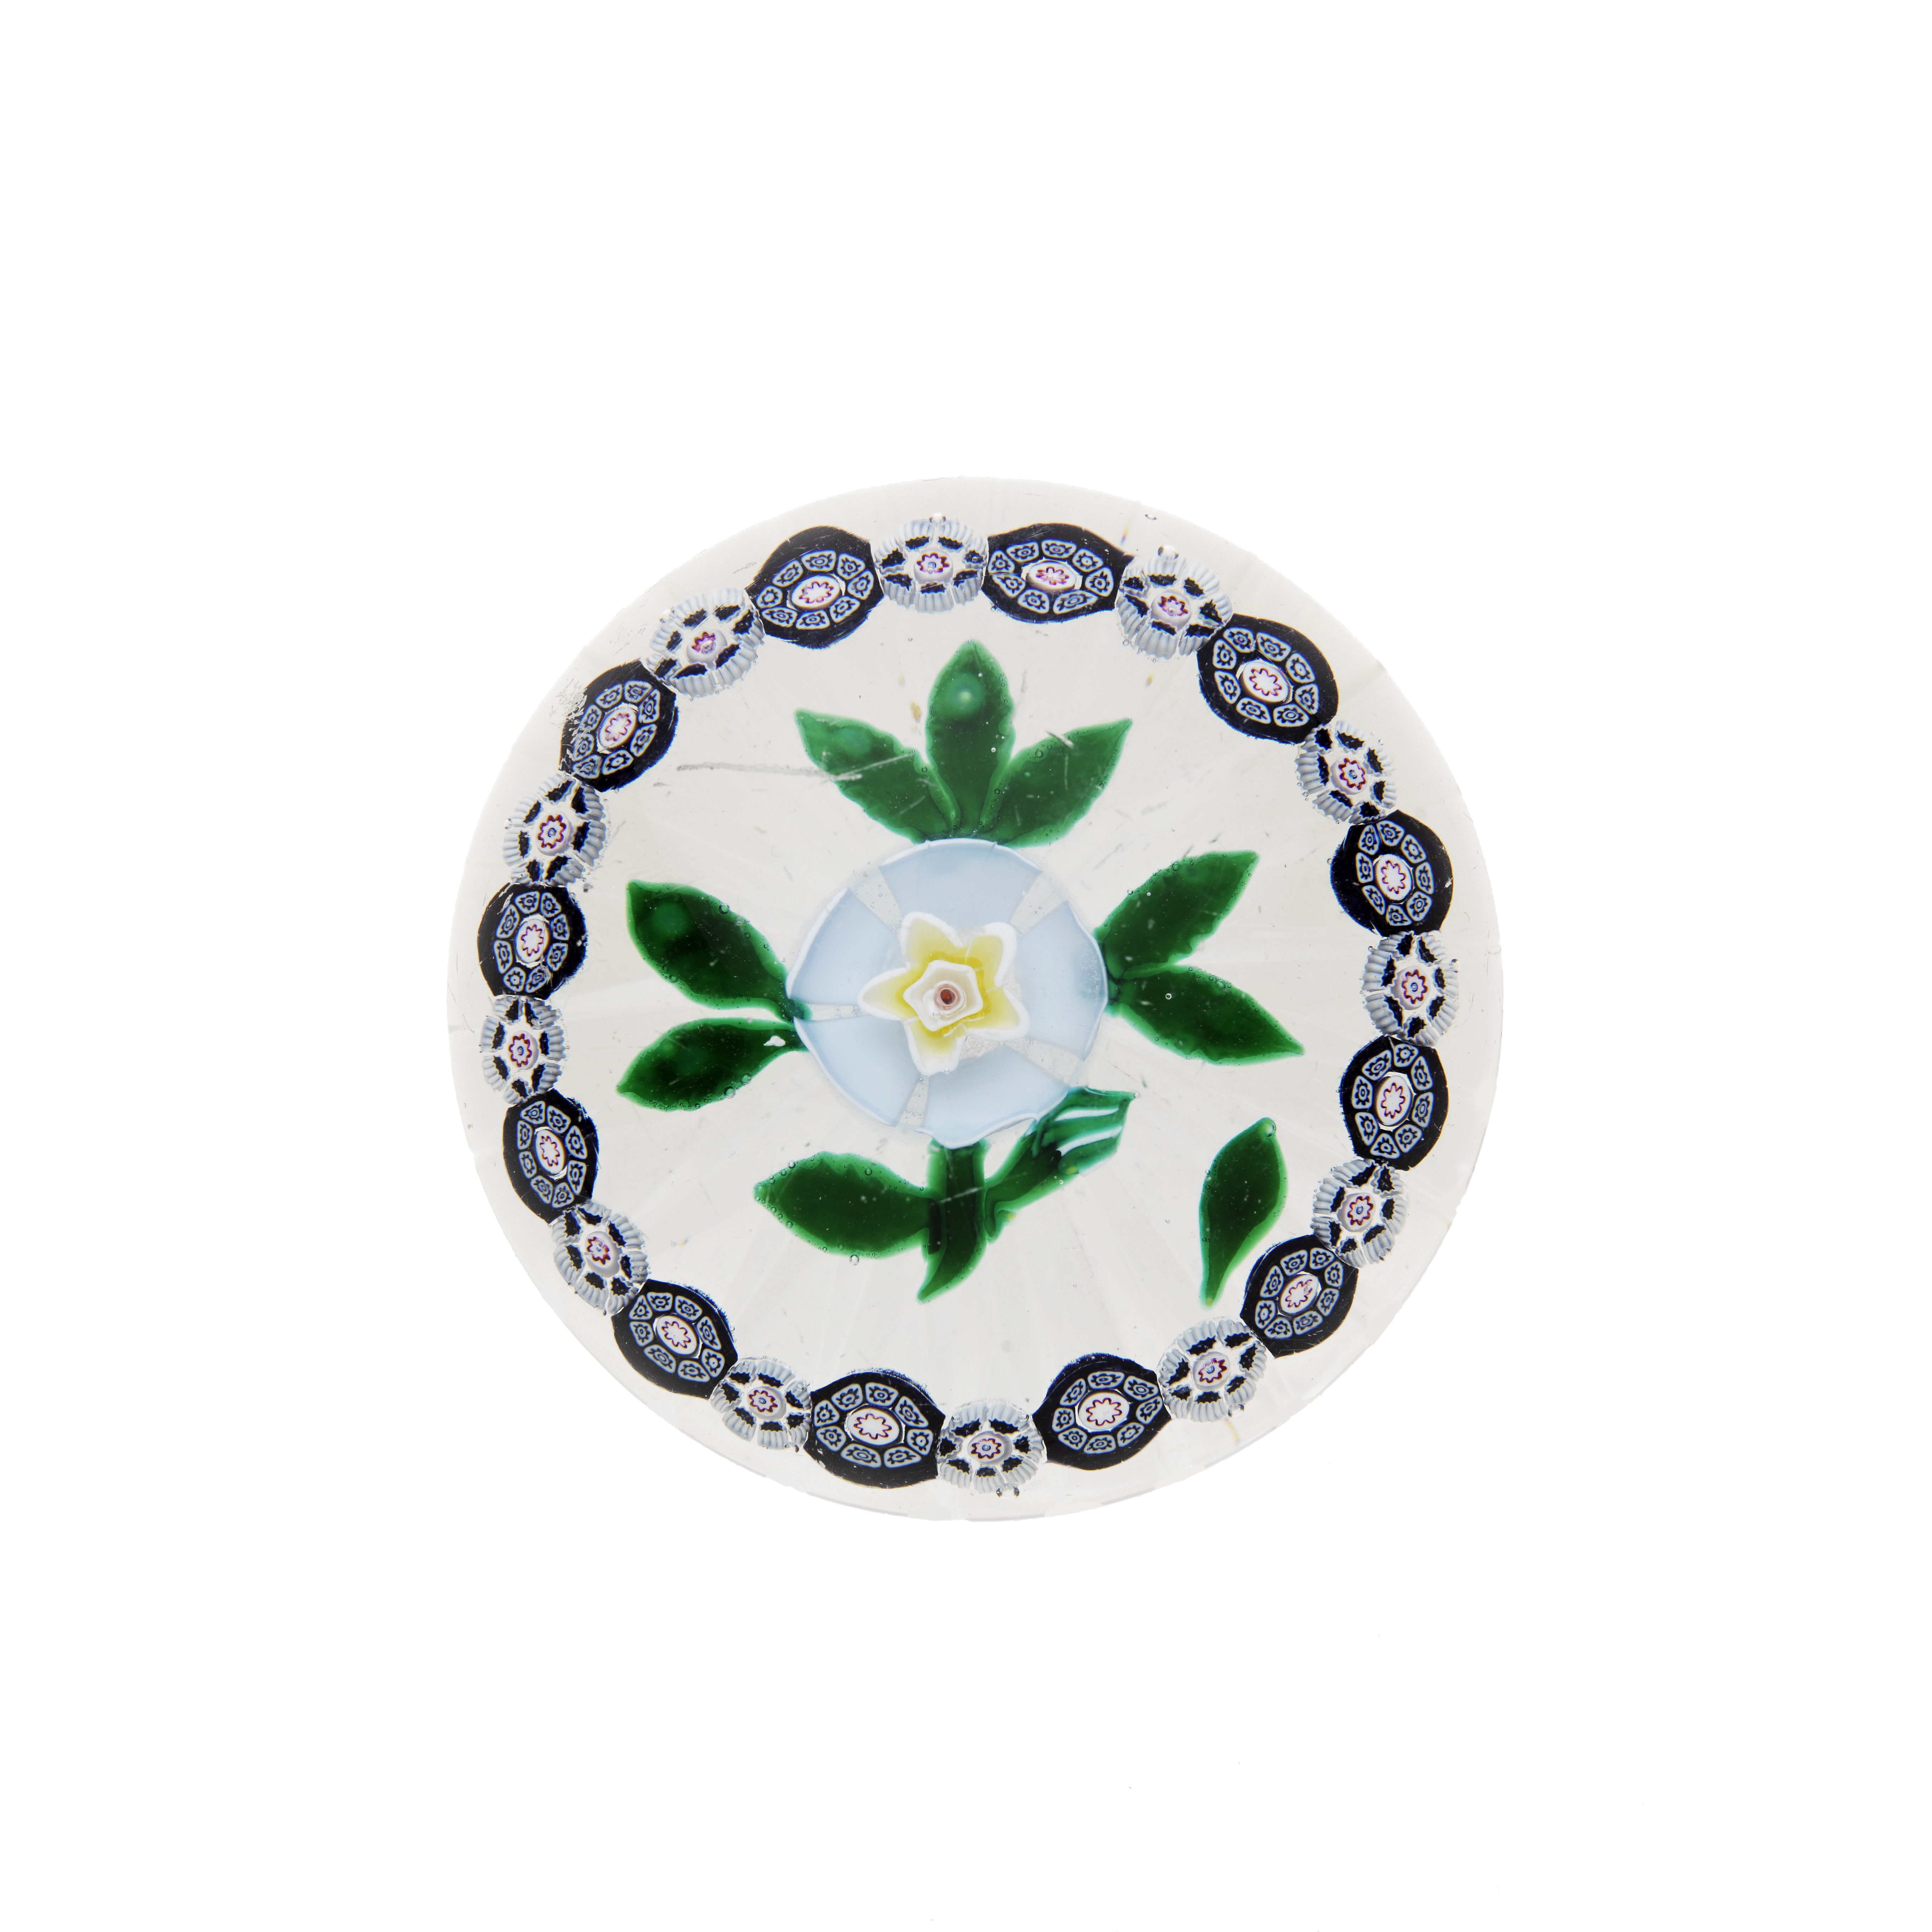 A rare American garlanded buttercup paperweight from the New England Glass Co, circa 1852-80